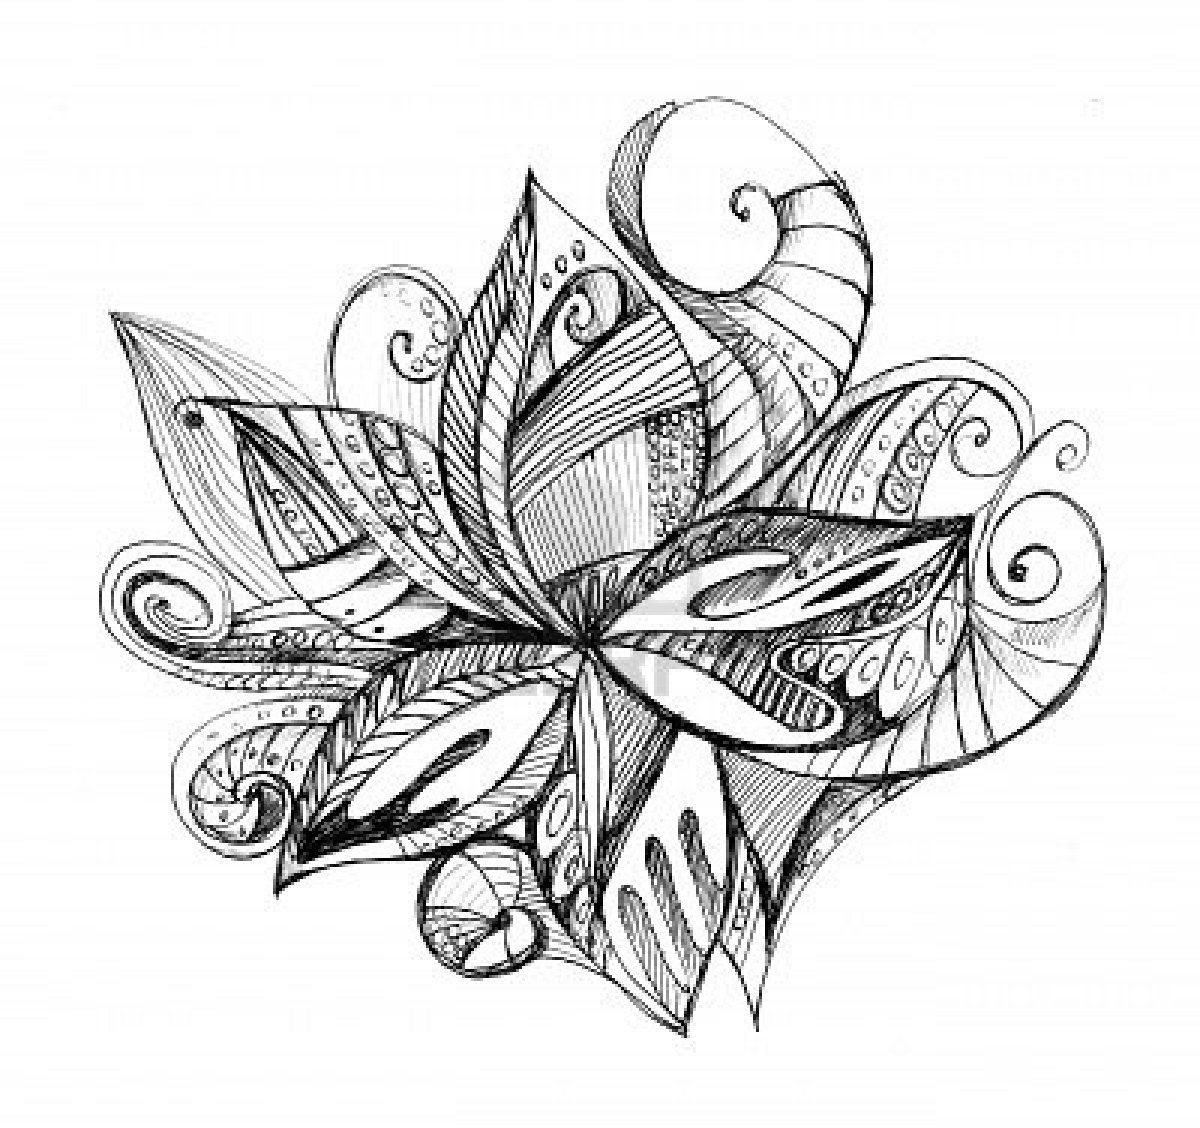 Drawing Design Ideas cool designs to draw cool designs coloring pages gekimoe u with Abstractdrawingsjpg 12001128